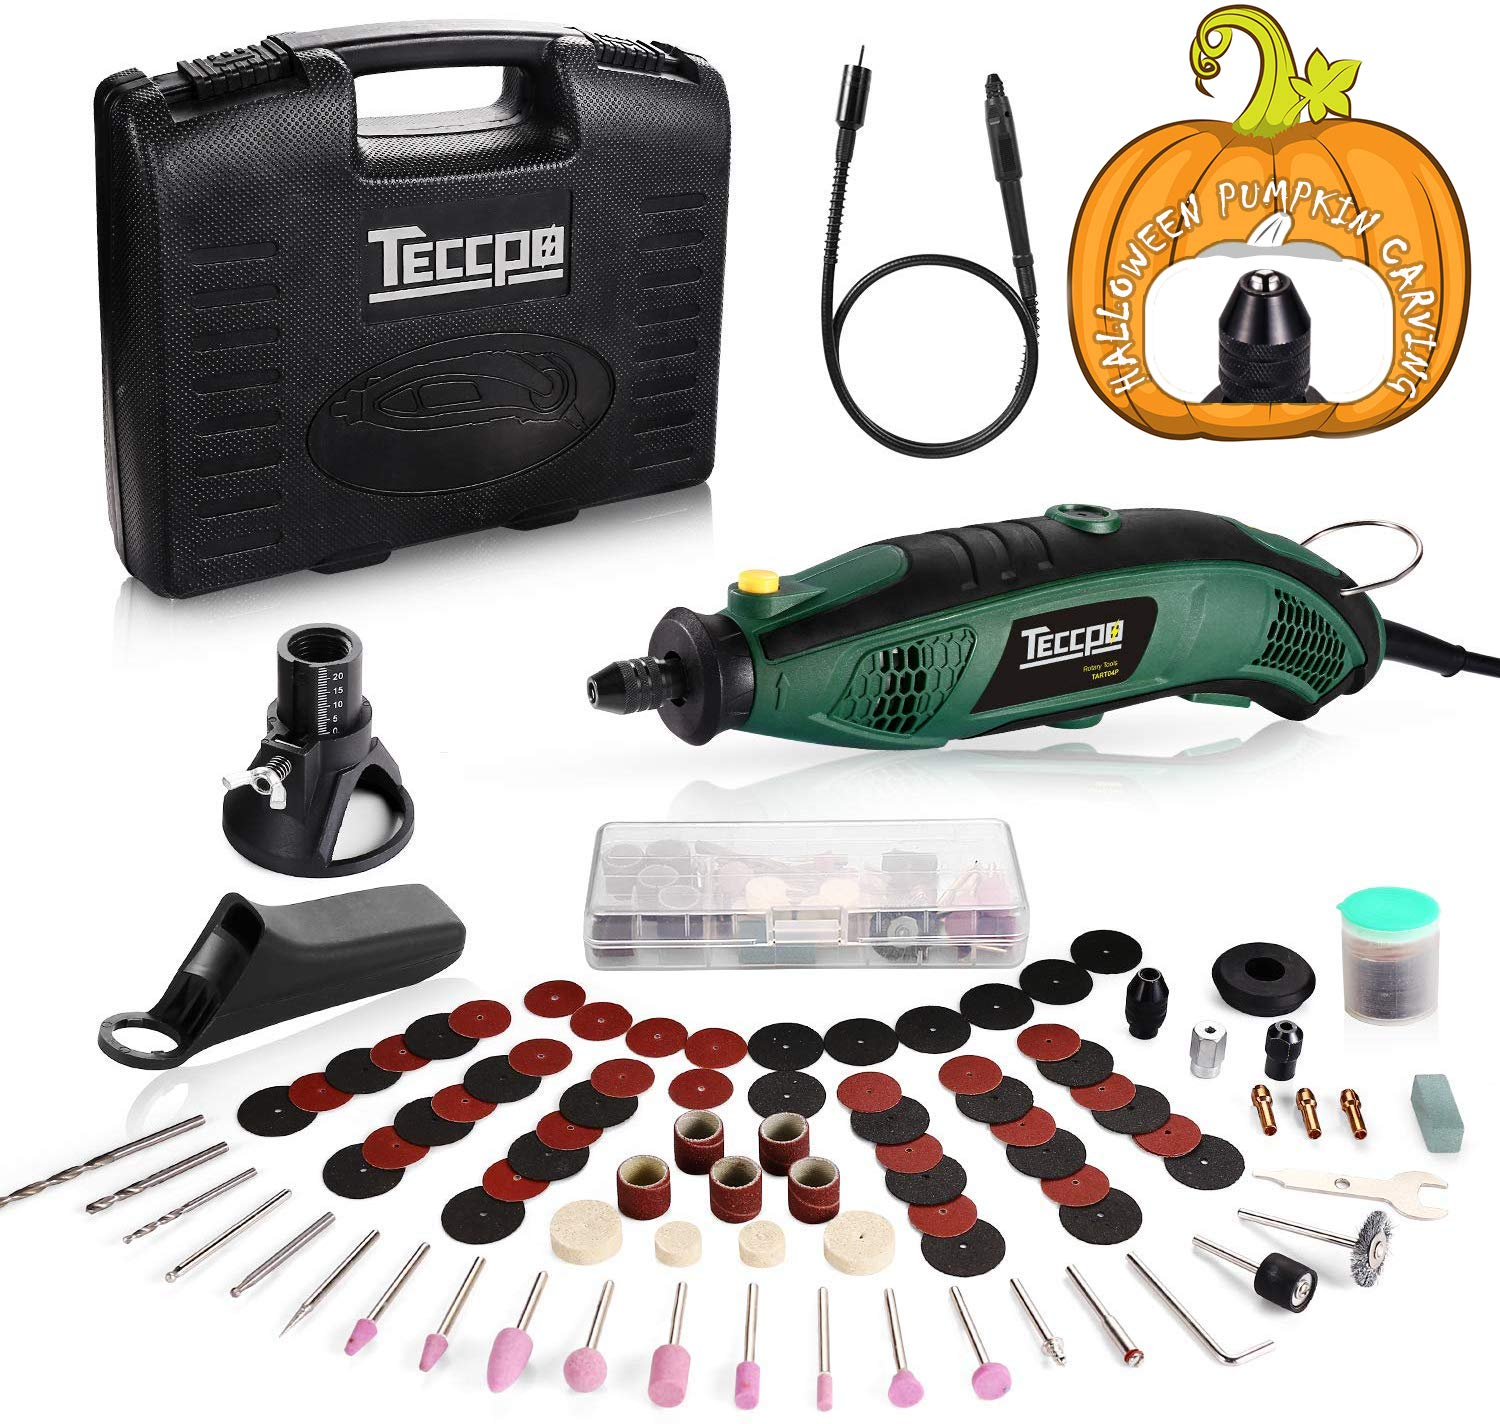 Upgraded Rotary Tool TECCPO 8,000-35,000RPM, Universal Keyless Chuck, Flex shaft, Cutting Guide, Auxiliary Handle 84 Accessories Attachments, Ideal for Halloween Pumpkin Carving DIY projects